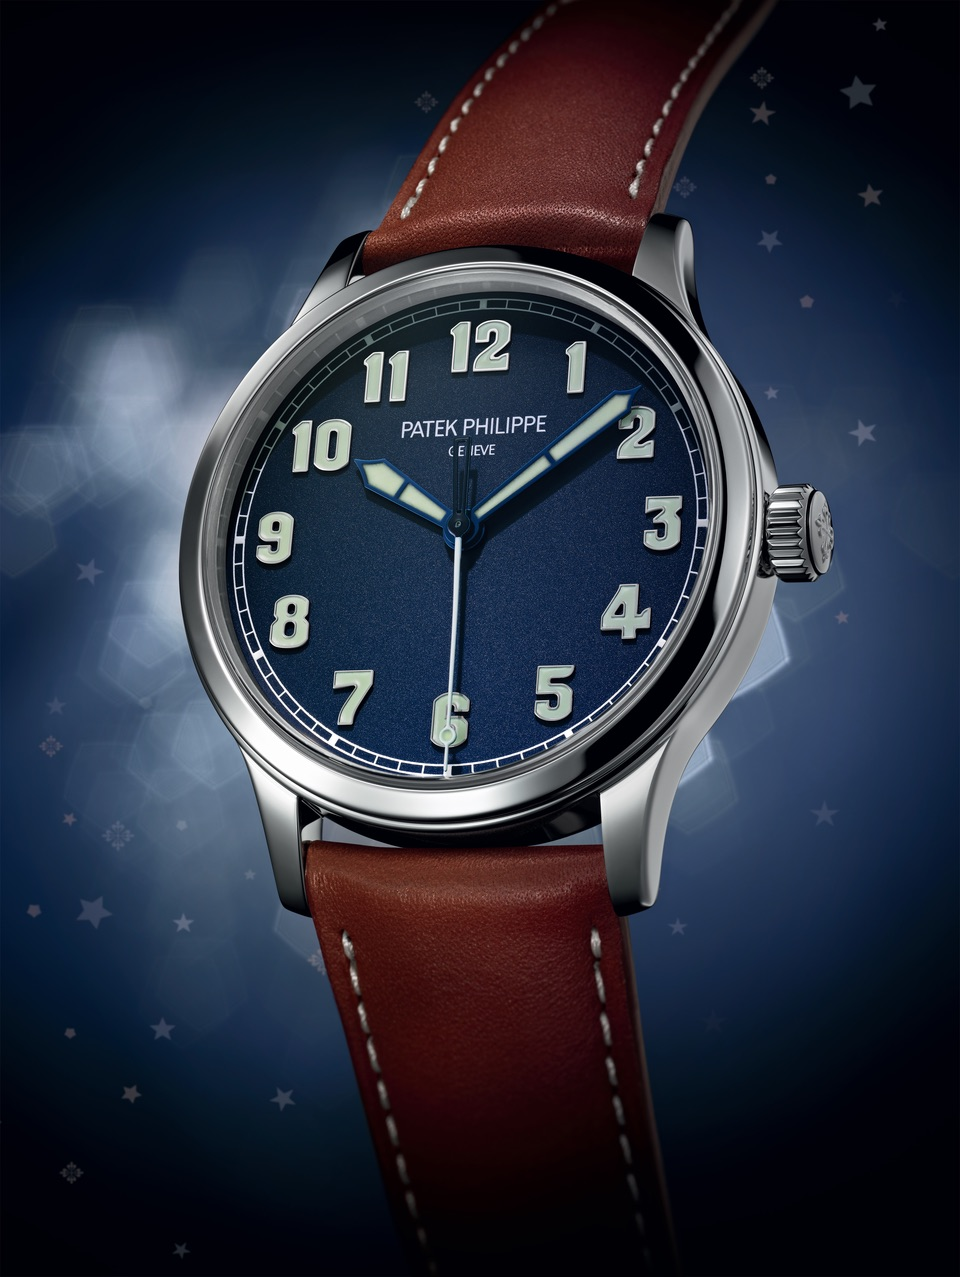 Patek Philippe Ref. 522A Pilot Watch, Special Edition New York 2017.